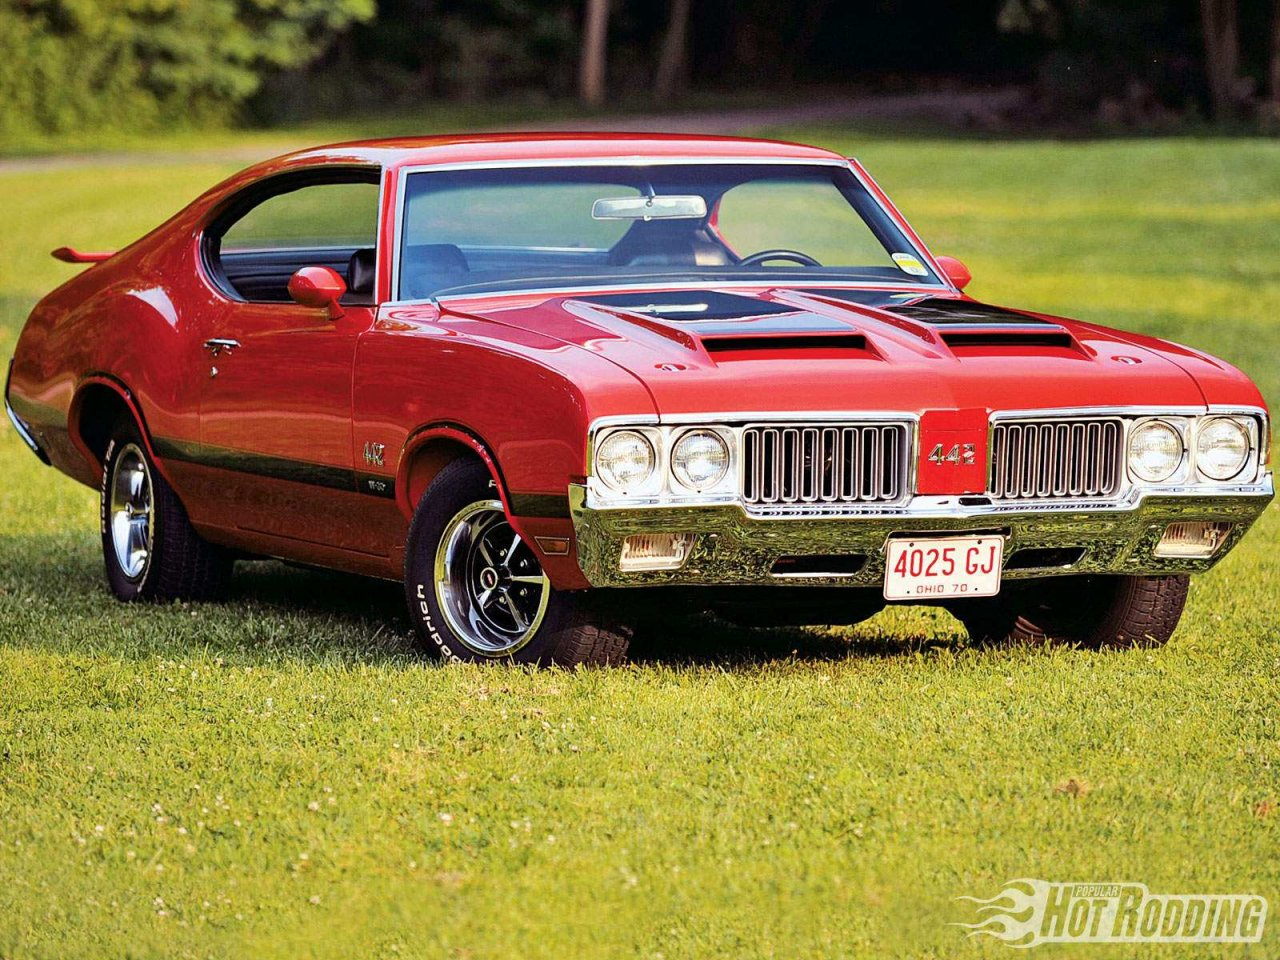 Oldsmobile 442 Cutlass W30 laptimes, specs, performance data